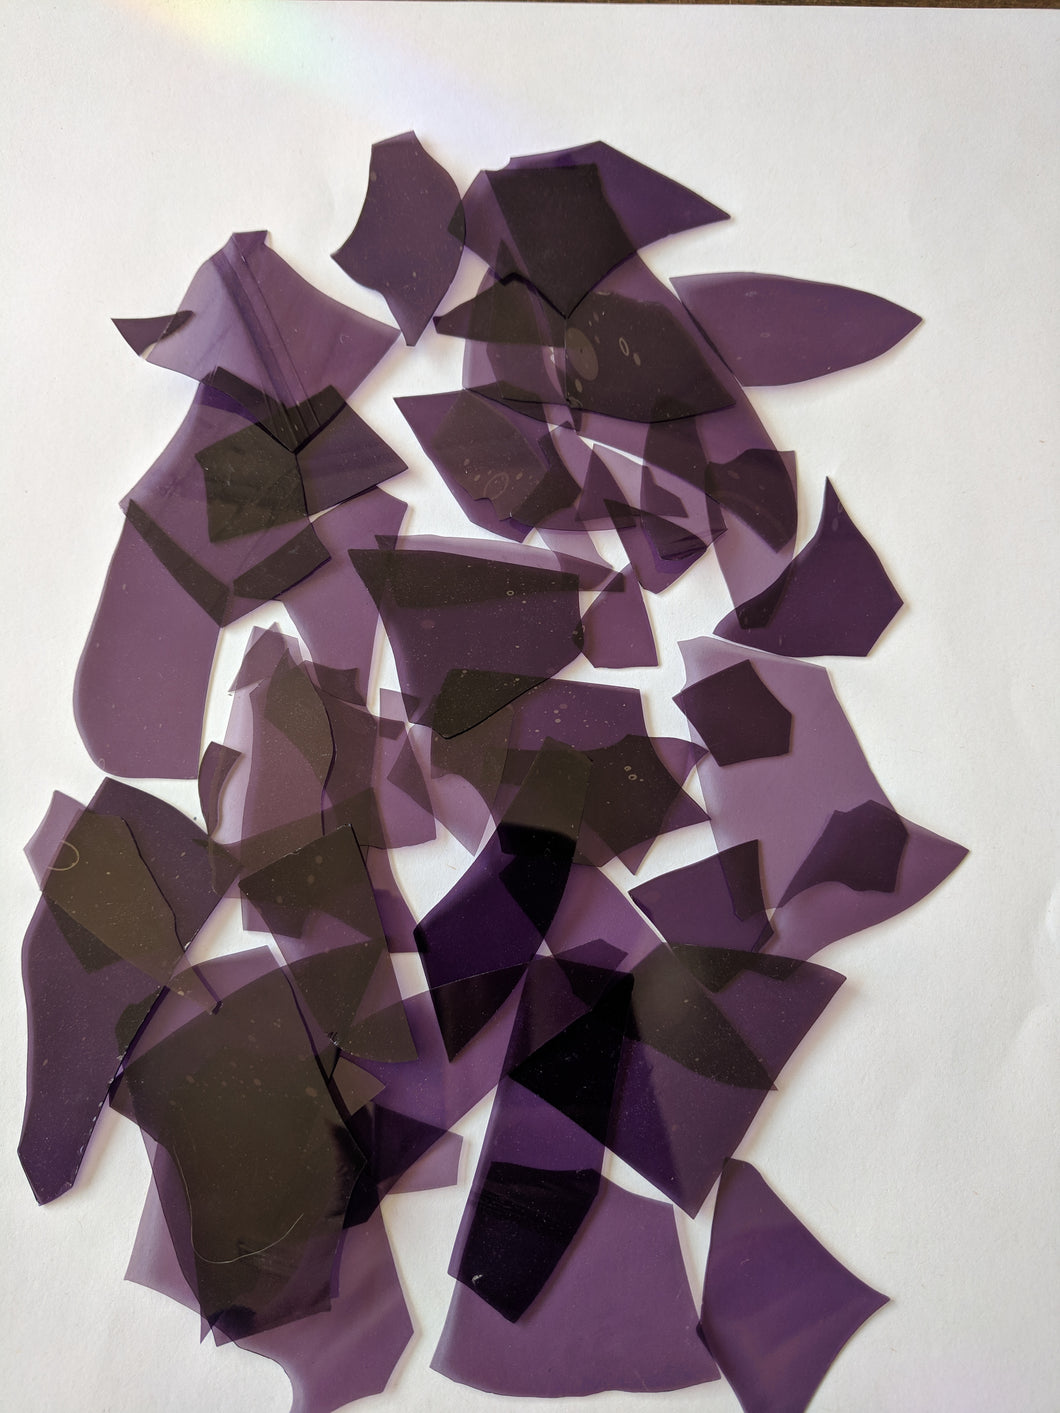 Deep Royal Purple Transparent Confetti, Bullseye Compatible 1 oz coe90 at www.happyglassartsupply.com